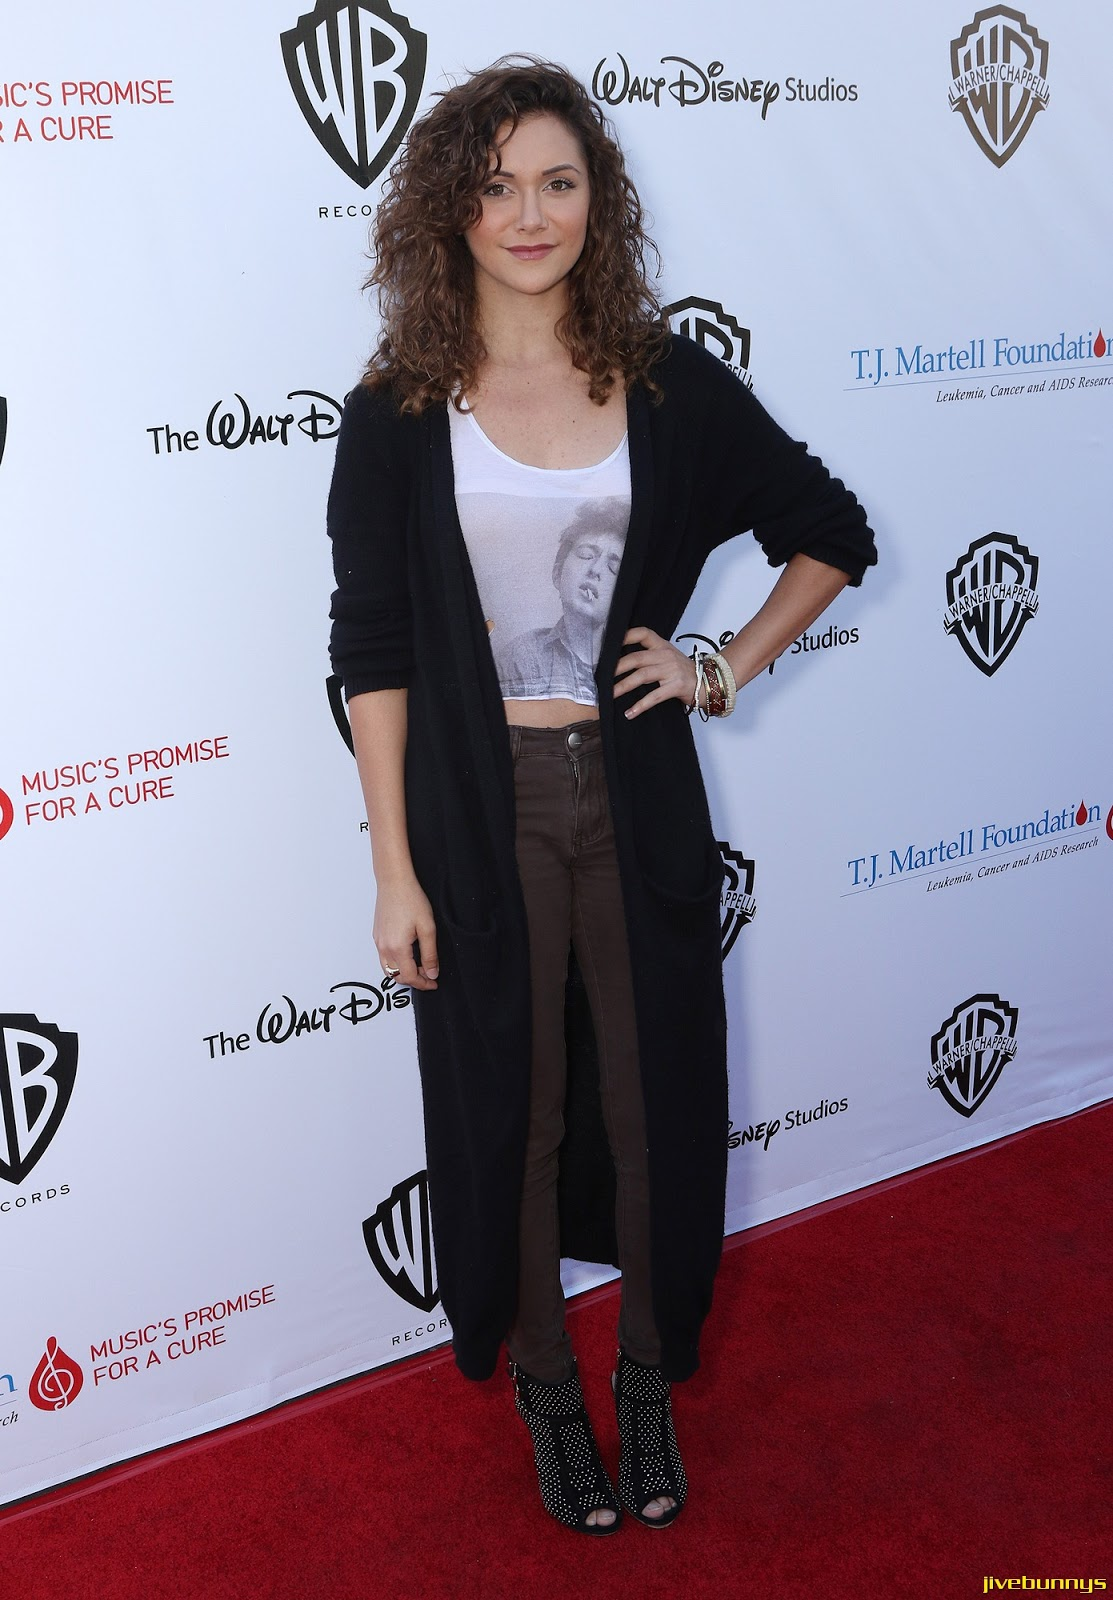 Alyson Stoner - T.J. Martell Foundation family day in Studio City 11/16/14